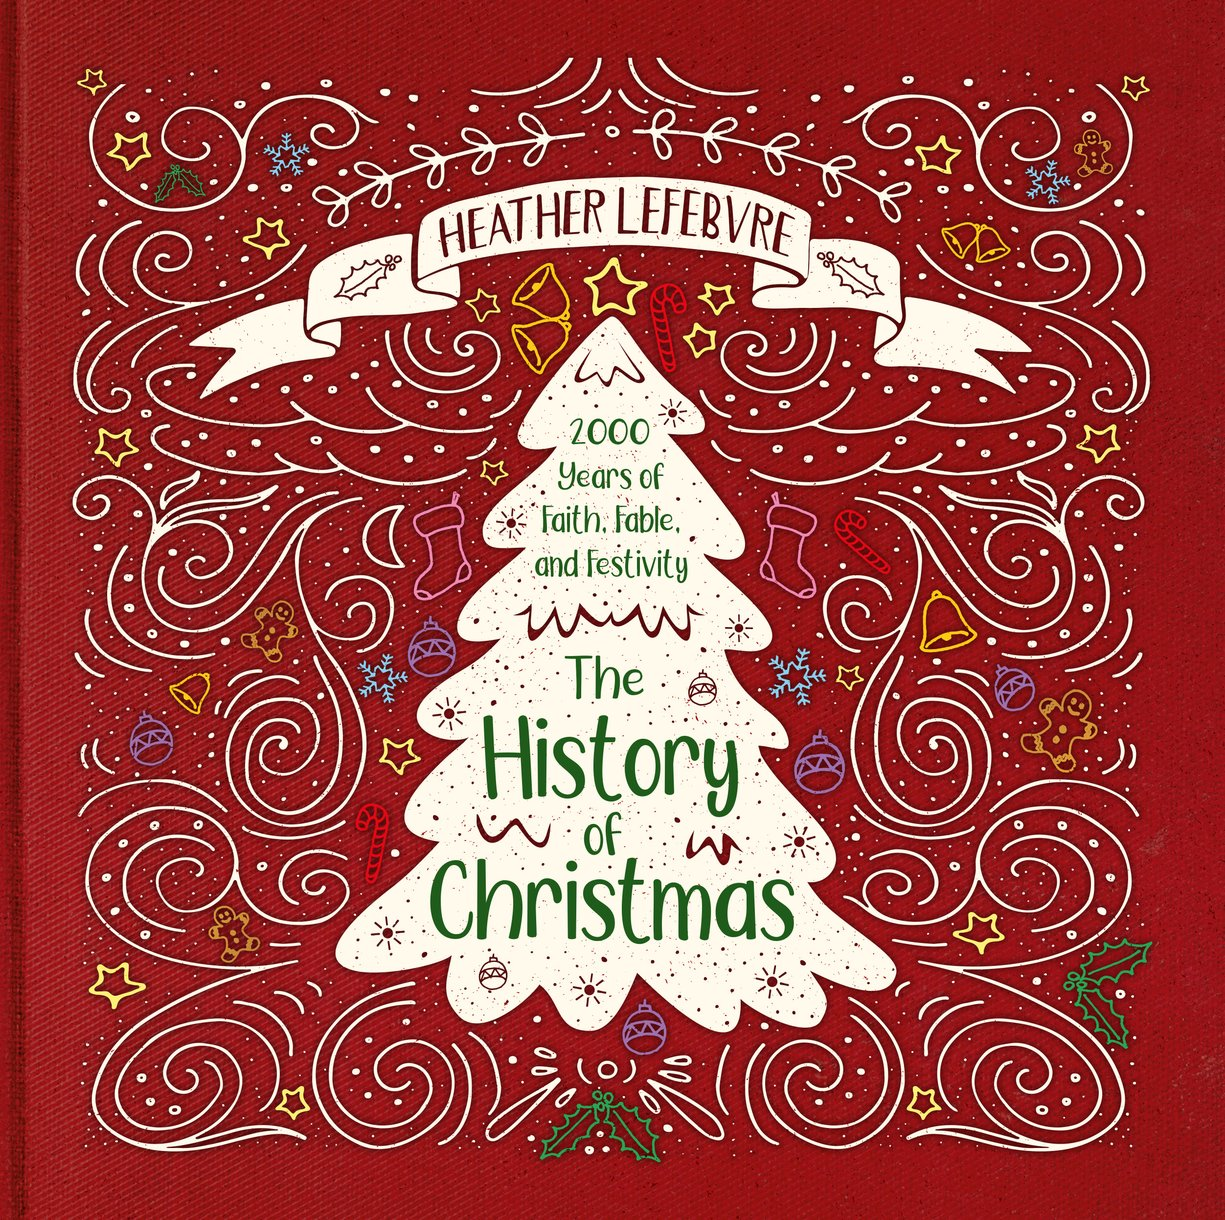 Christmas History.The History Of Christmas 2 000 Years Of Faith Fable And